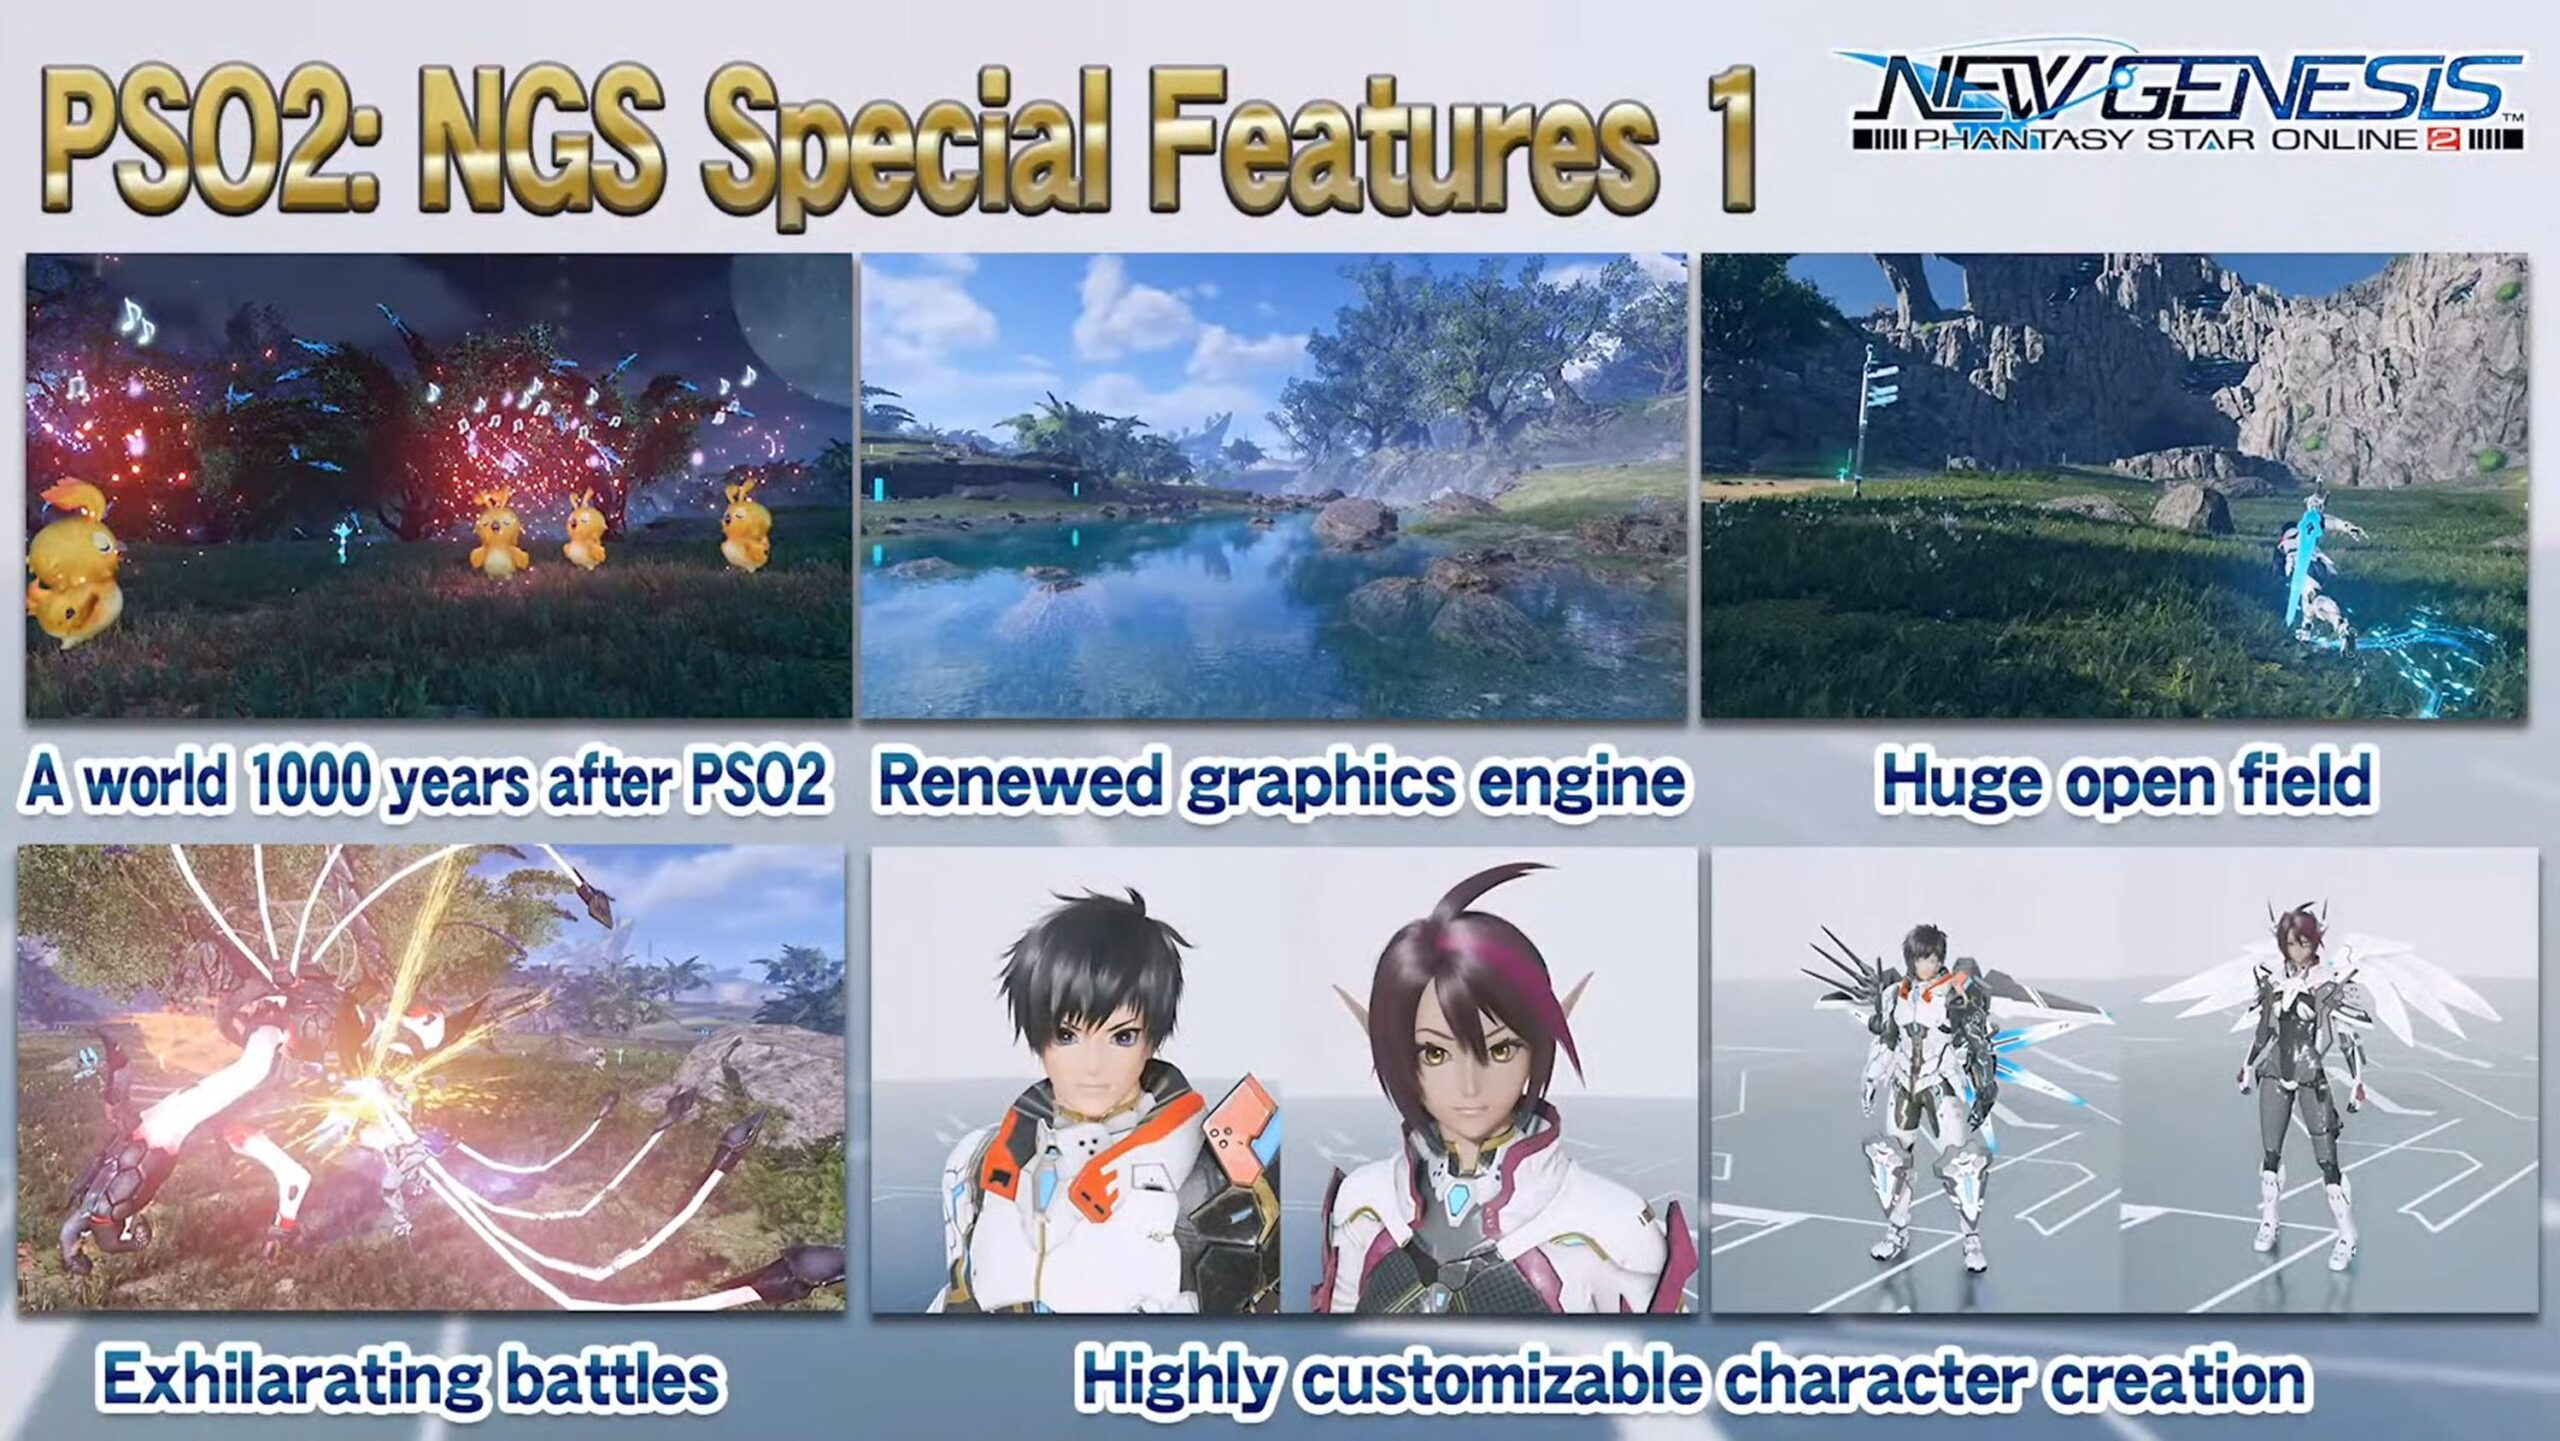 everything-you-need-to-know-from-the-phantasy-star-online-2:-new-genesis-prologue-1-stream